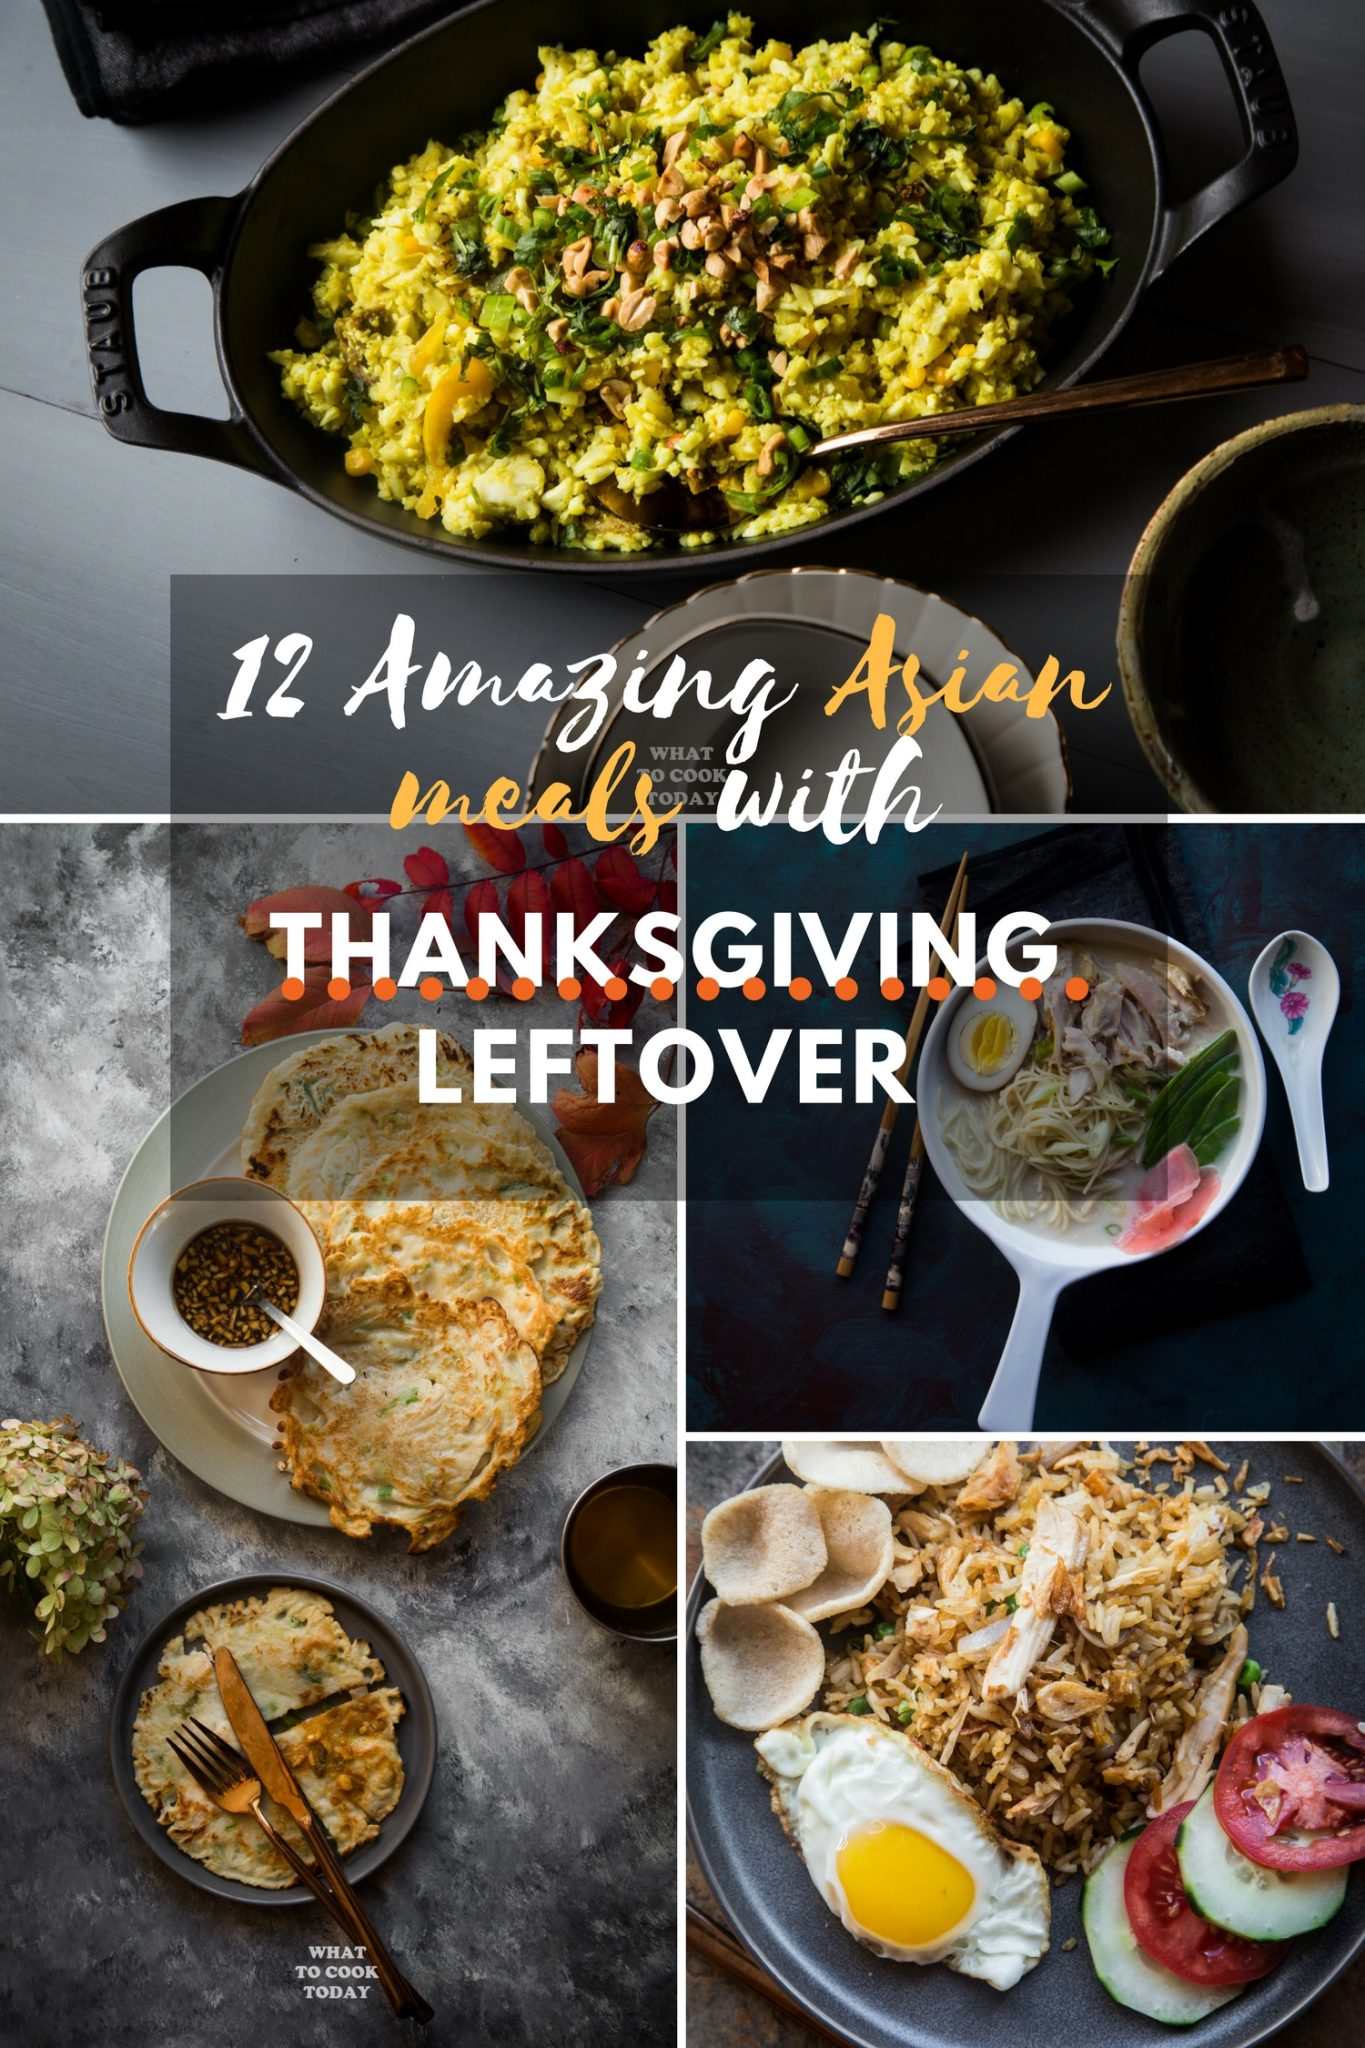 12 Amazing Asian meals with Thanksgiving leftover meat